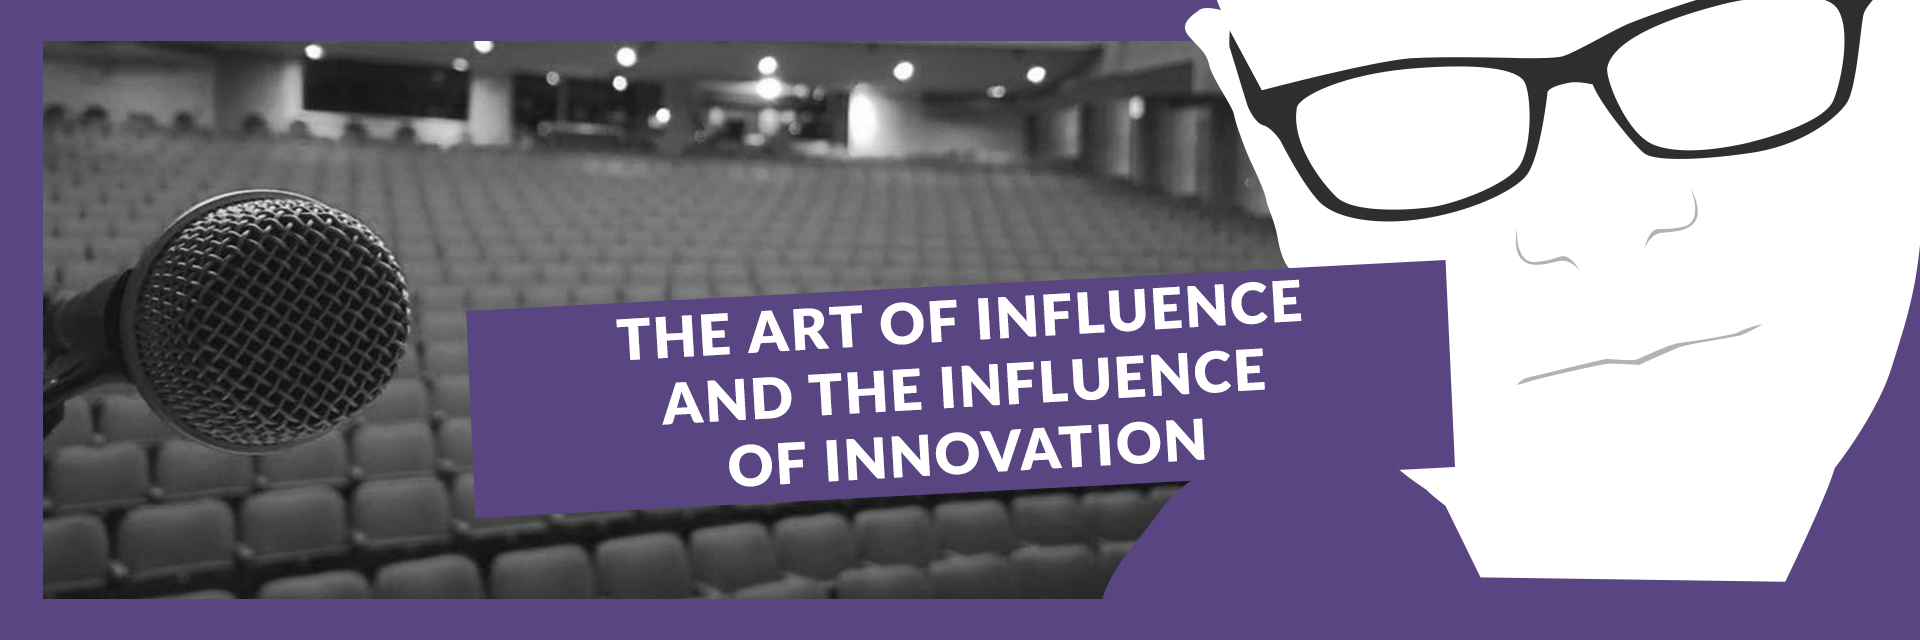 The Art of Influence and the Influence of Innovation